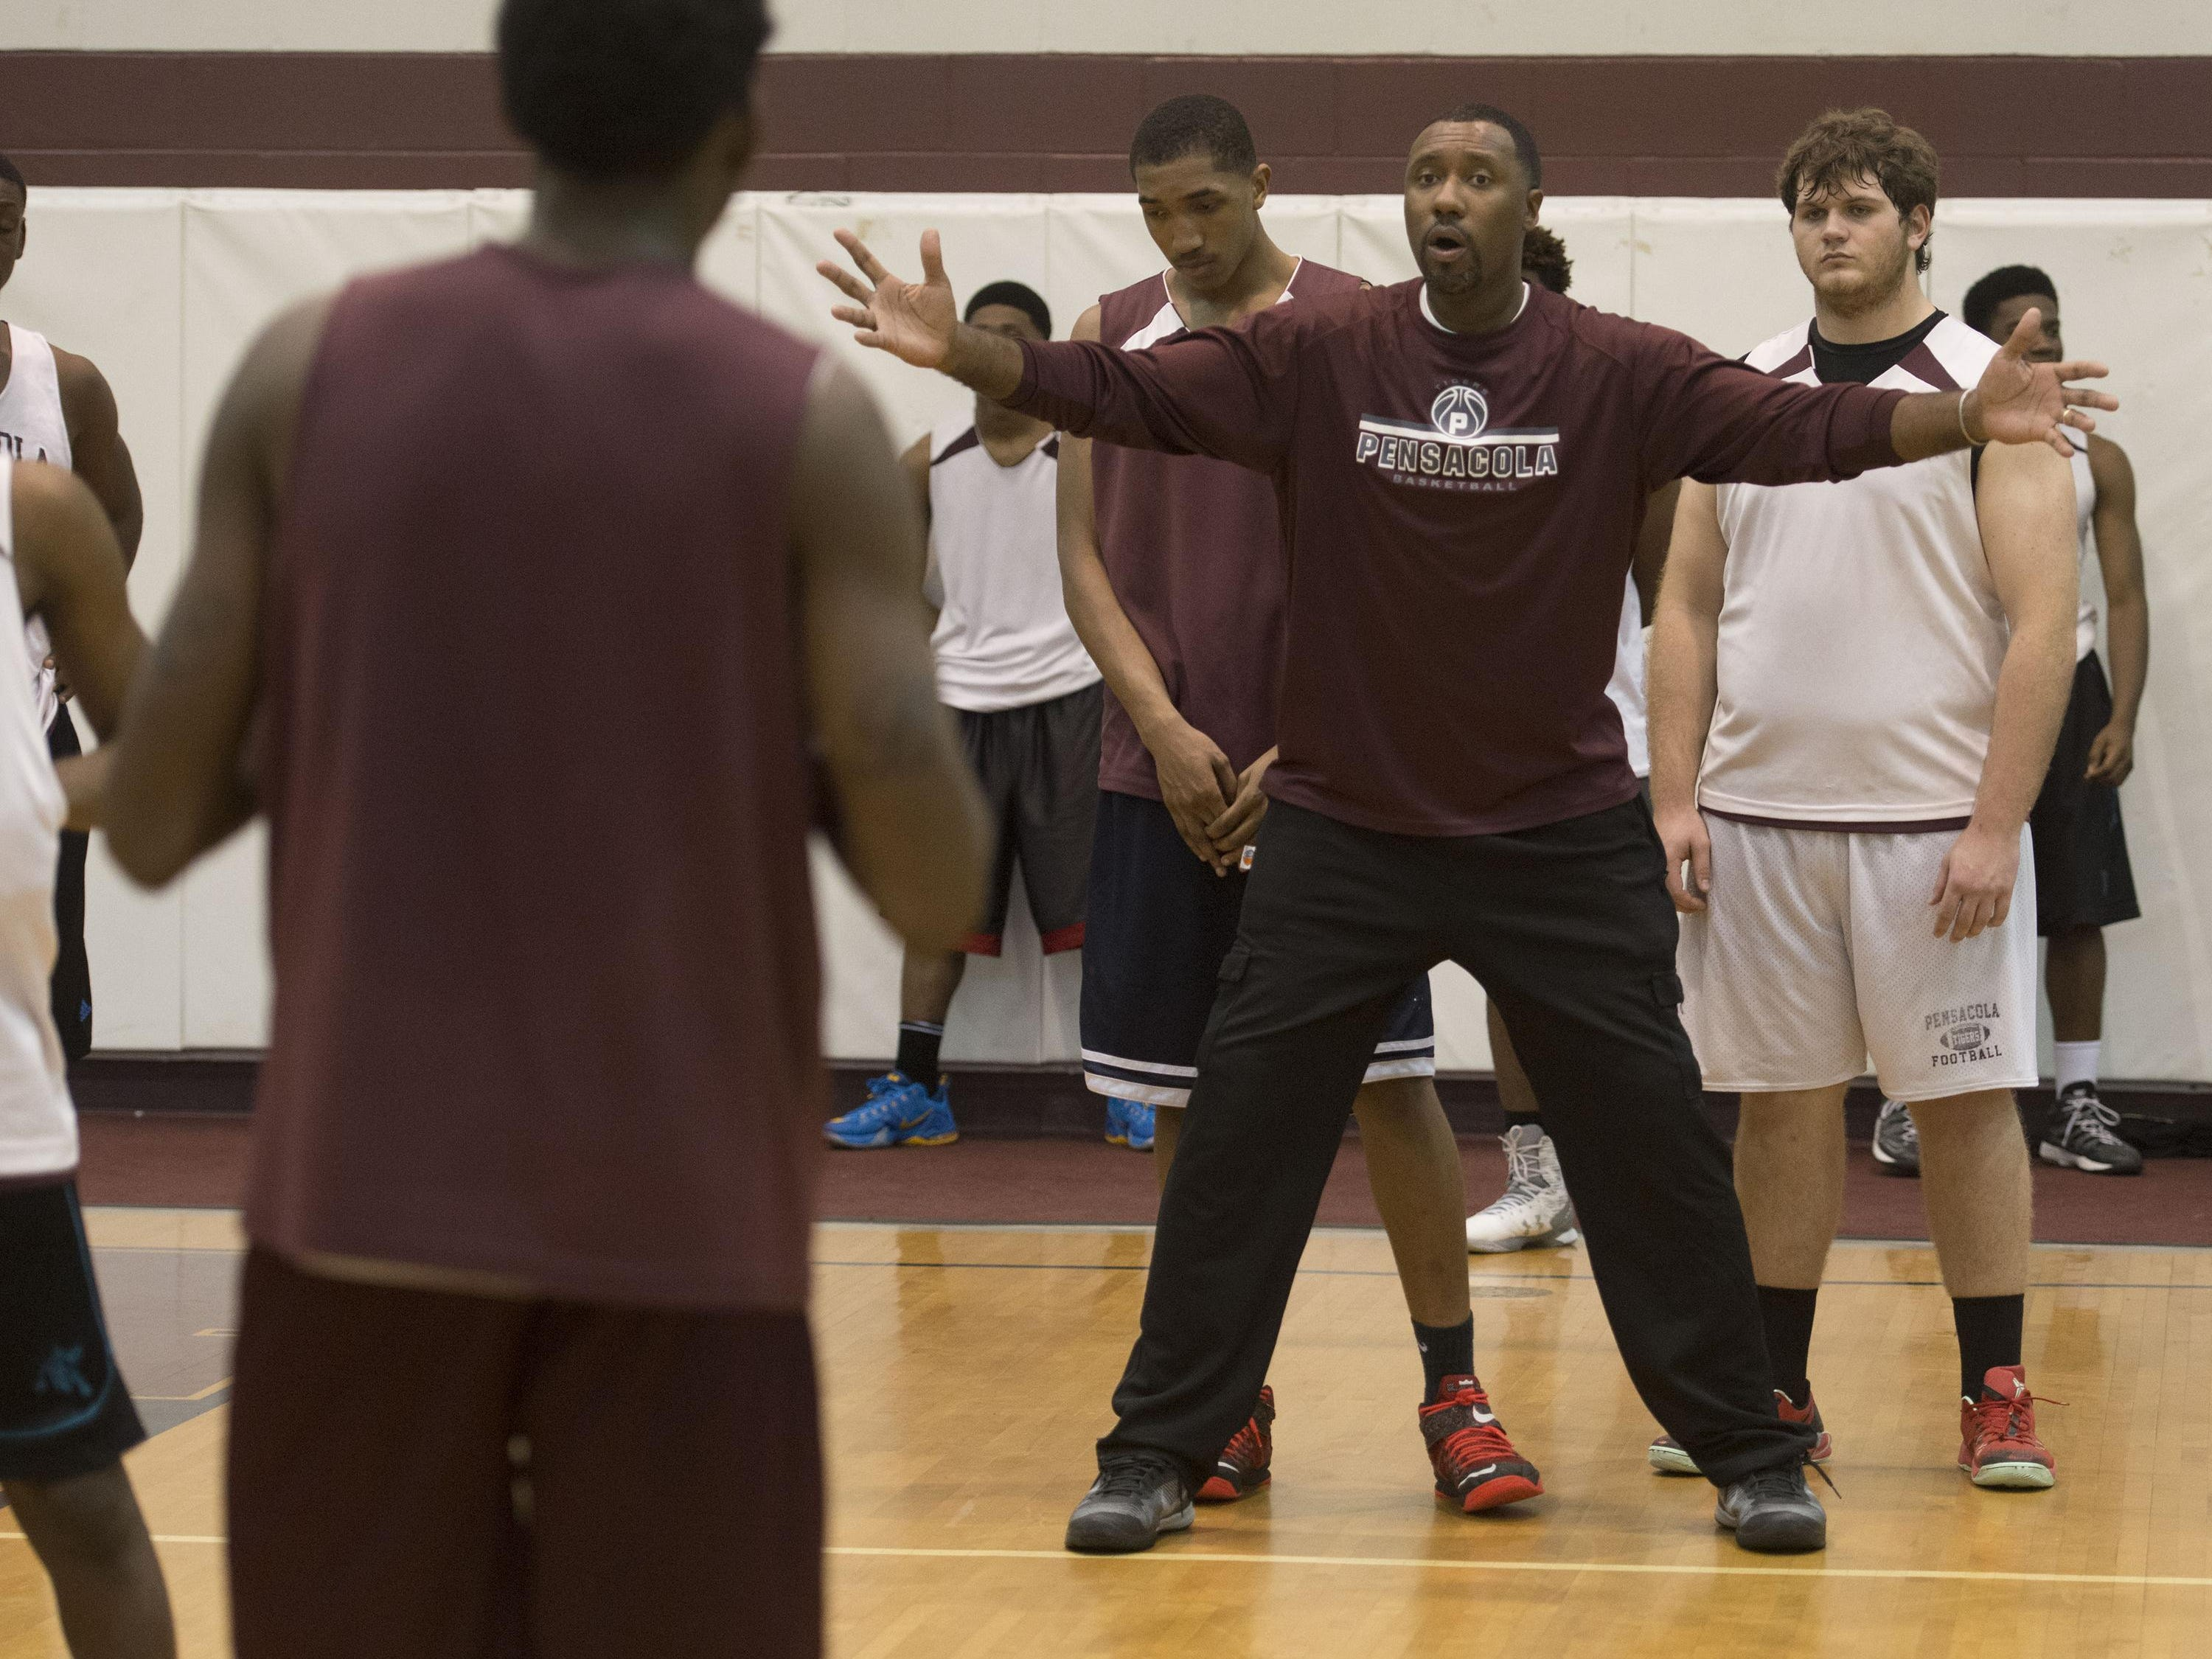 Pensacola High School Basketball coach, Terrence Harris, works to get his team ready for the Region 6A Semifinals game in Lakeland.